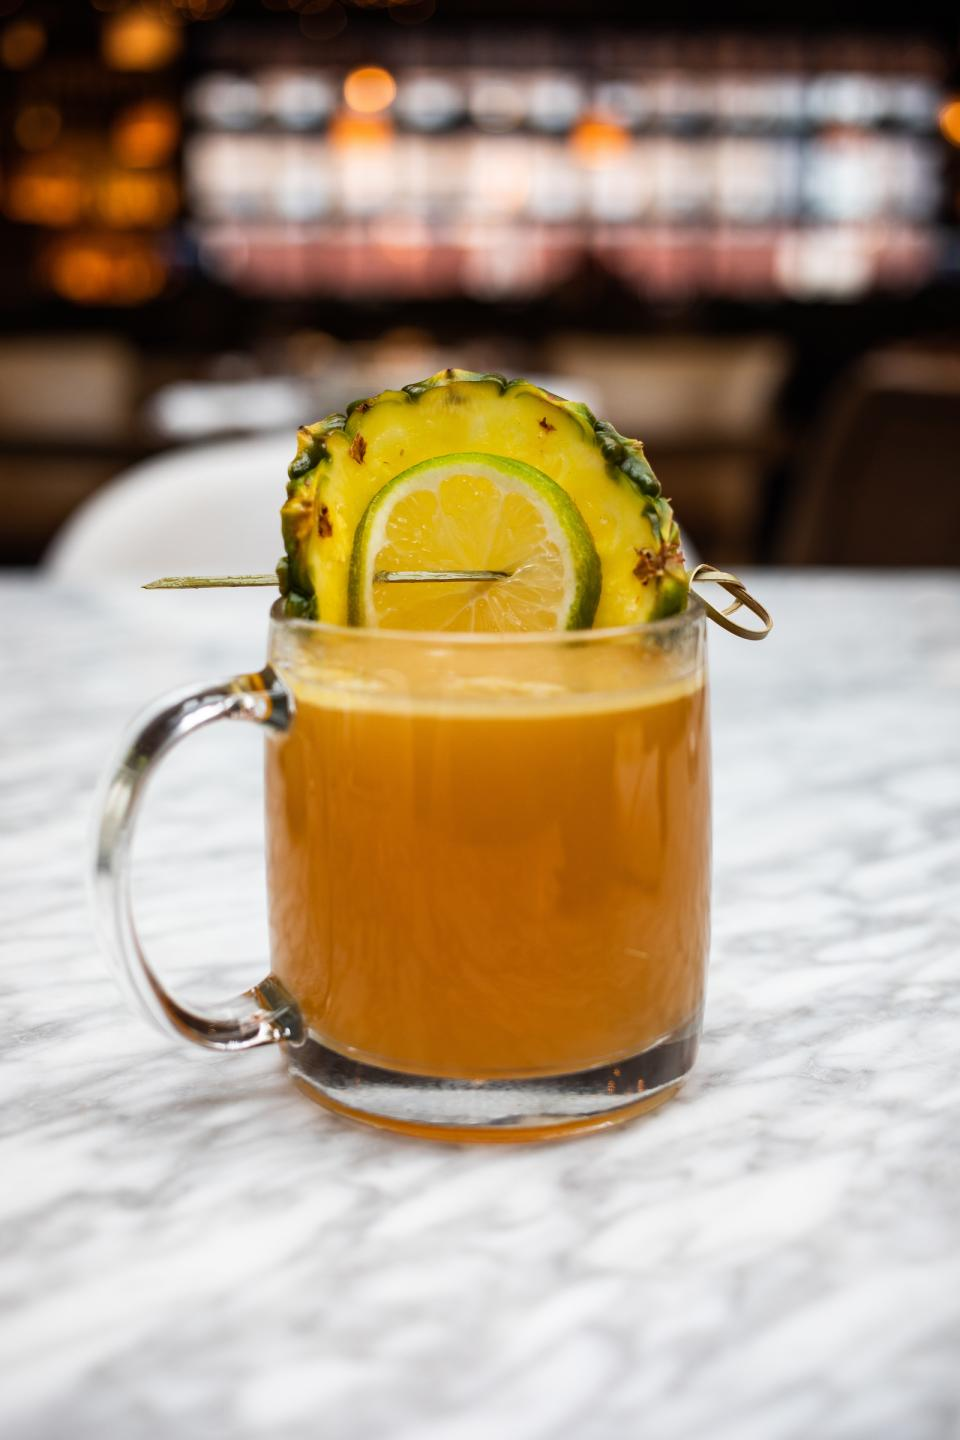 Hot buttered pineapple rum